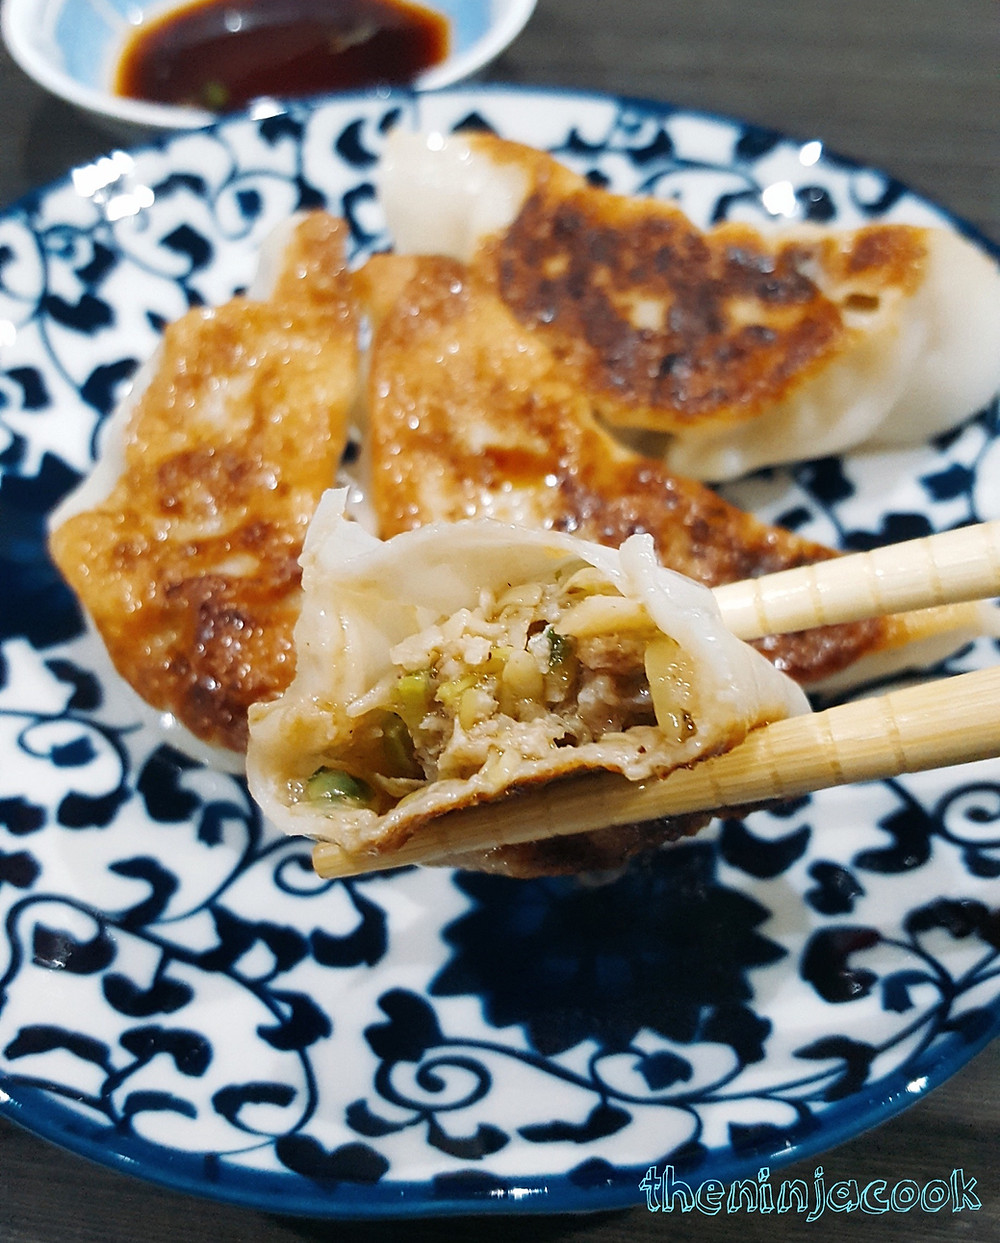 Fried Gyoza (Japanese Pot Stickers)